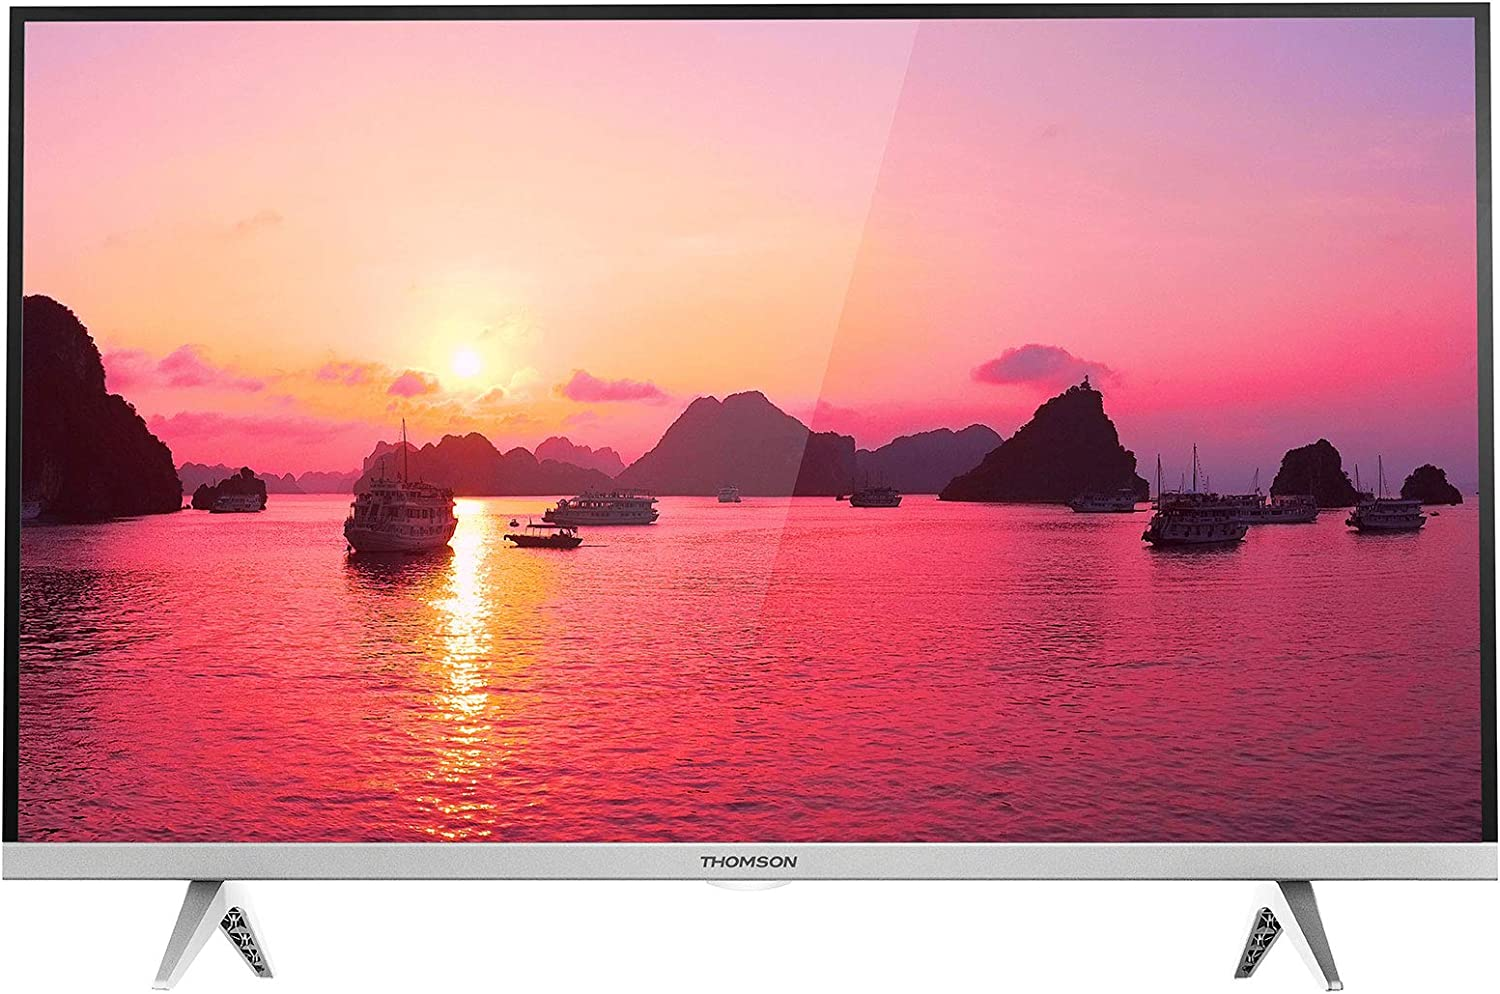 DC Thomson - TV Led 32 - Thomson 32He5800, HD, Android TV, Chromecast, Tdt2: Amazon.es: Electrónica